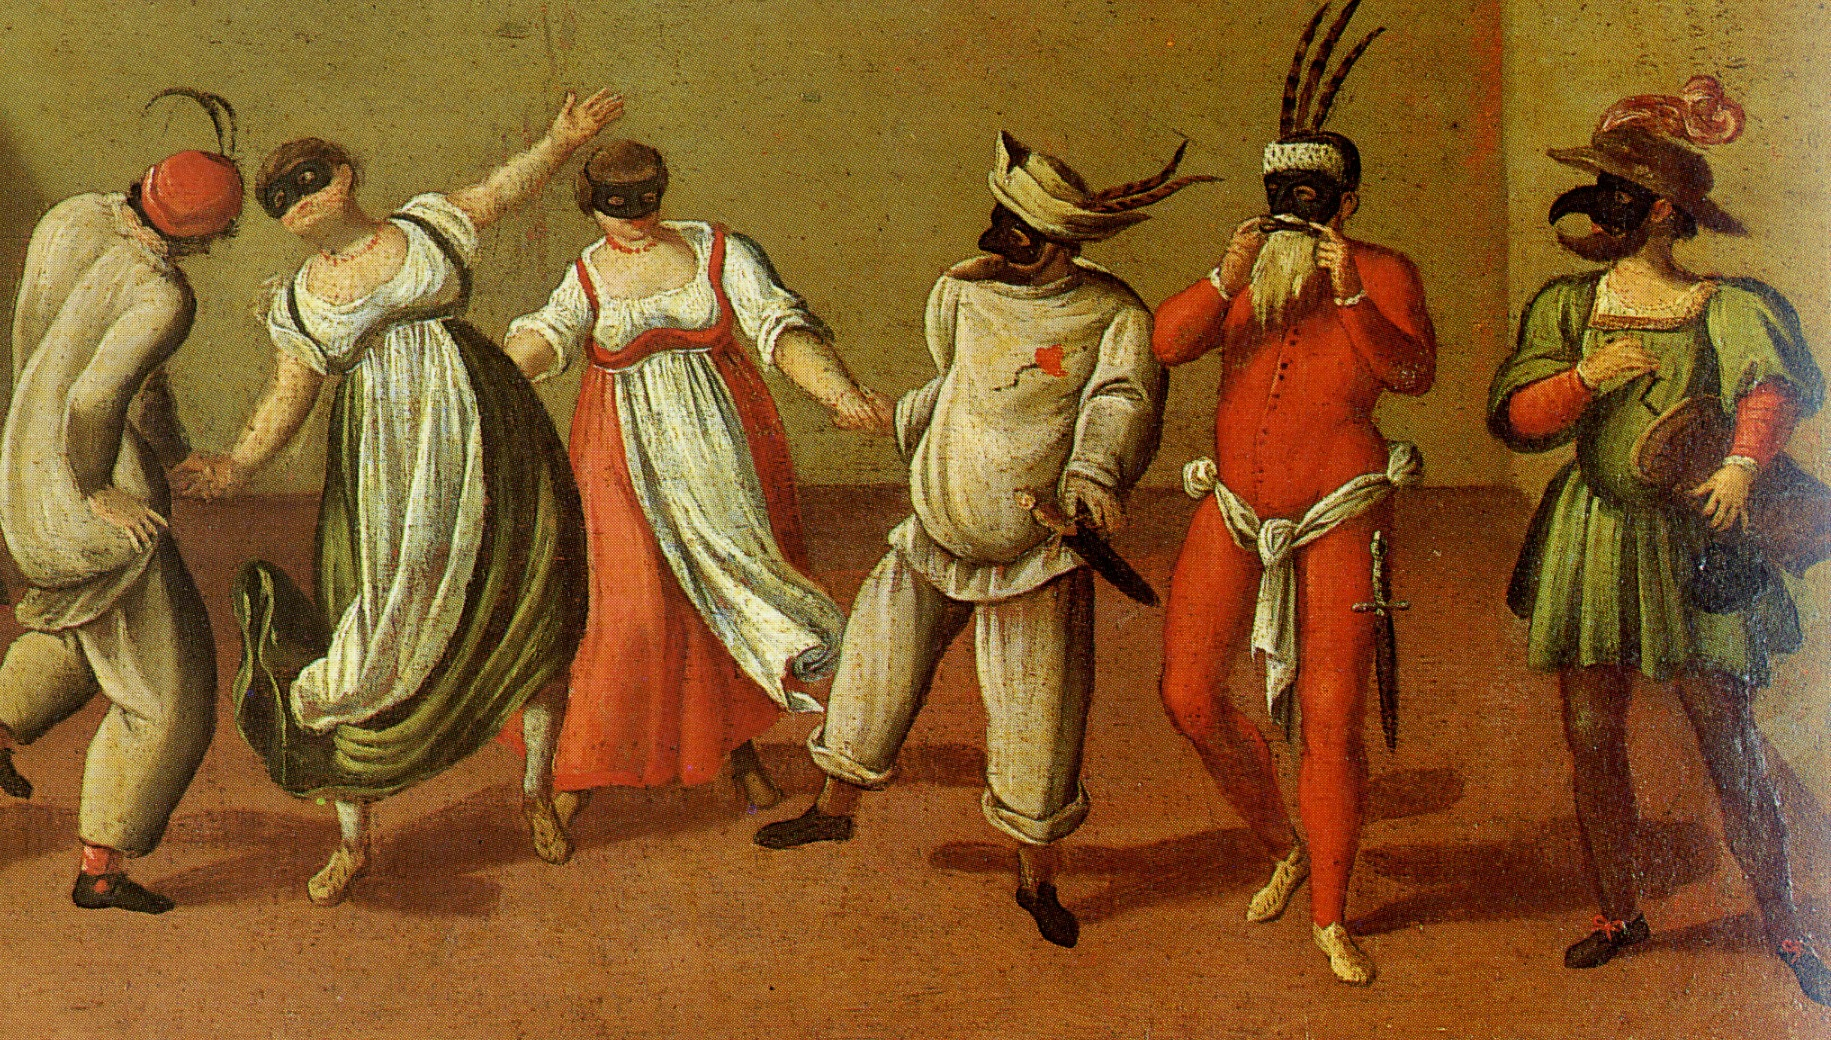 Punch, Pierrot and Pantalone